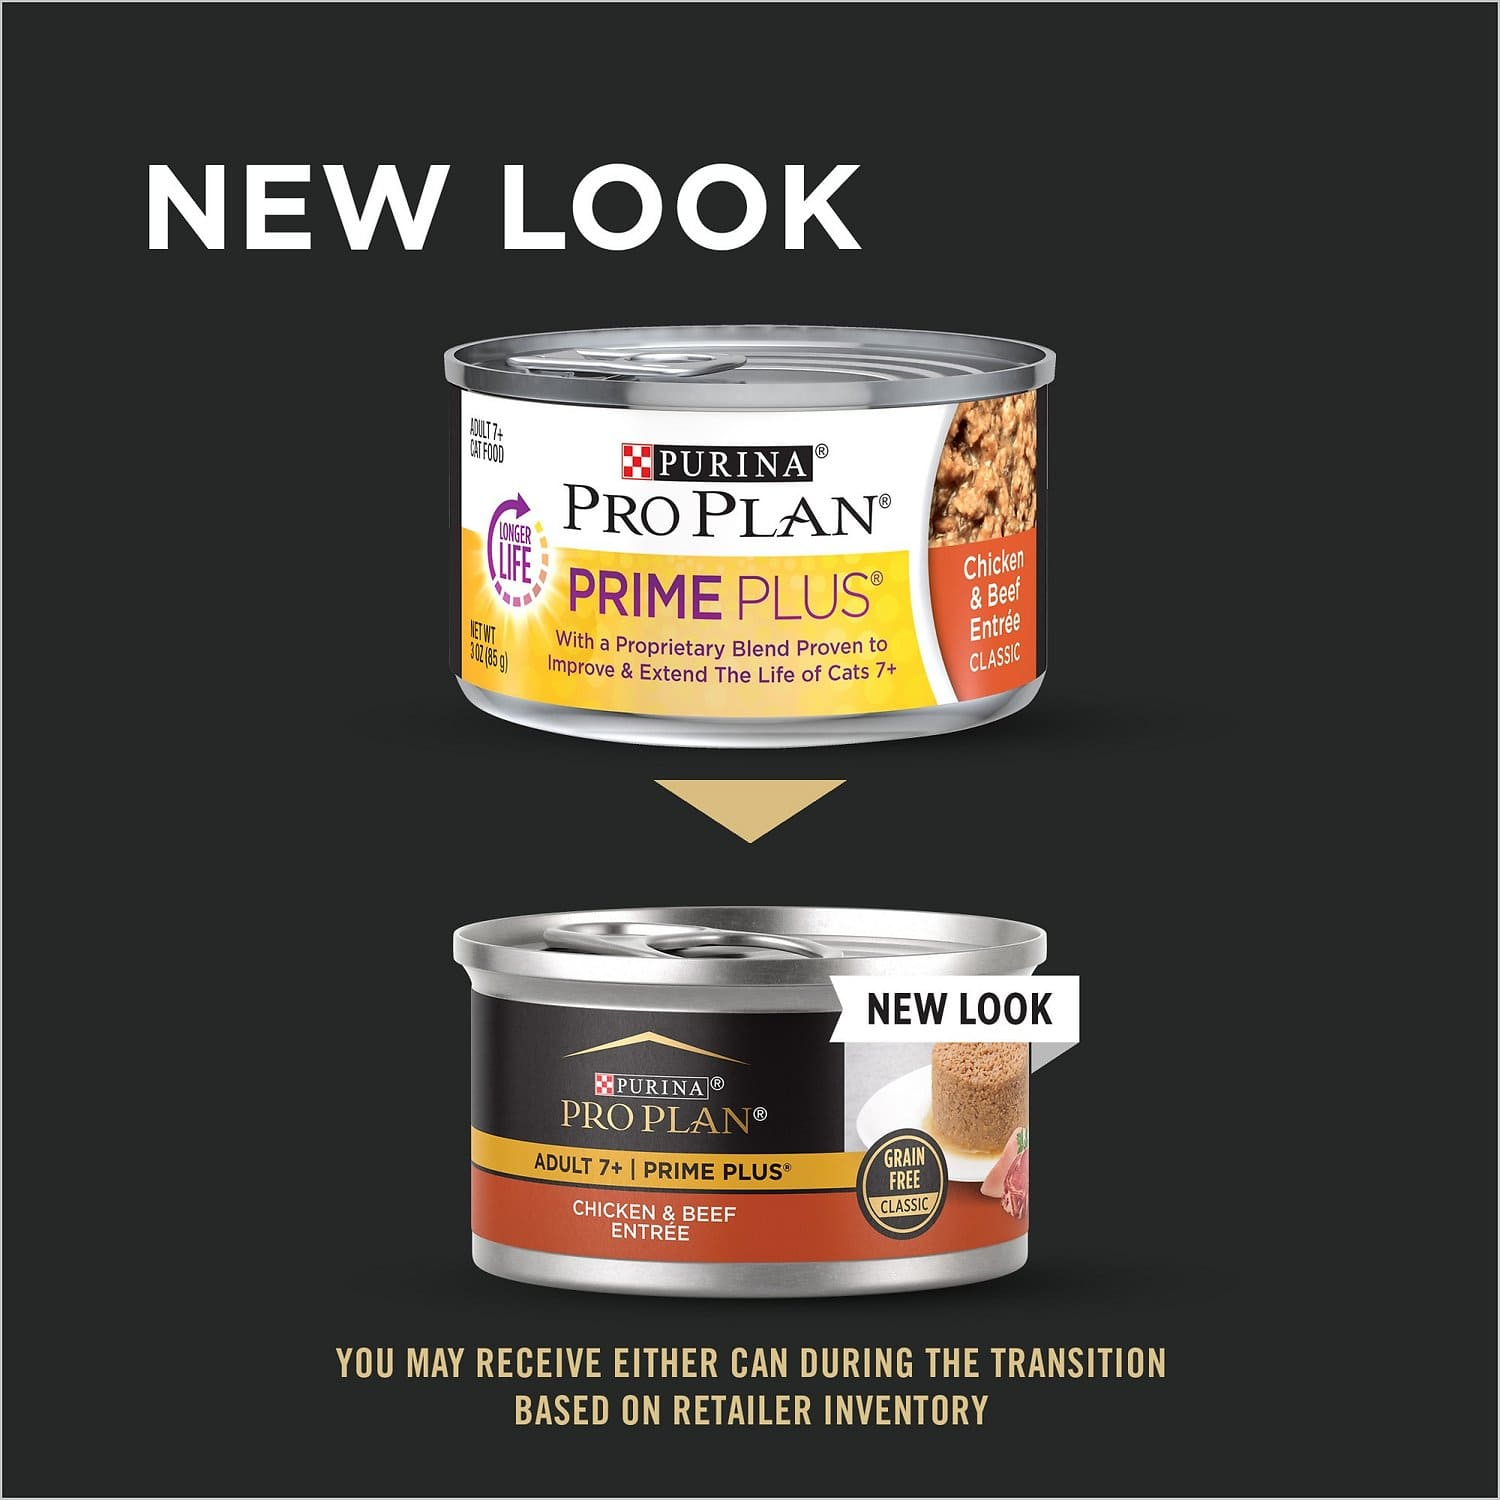 Purina Pro Plan Adult 7+ Prime Plus Entrée Classic 24 x 3 oz can Chicken & Beef 2